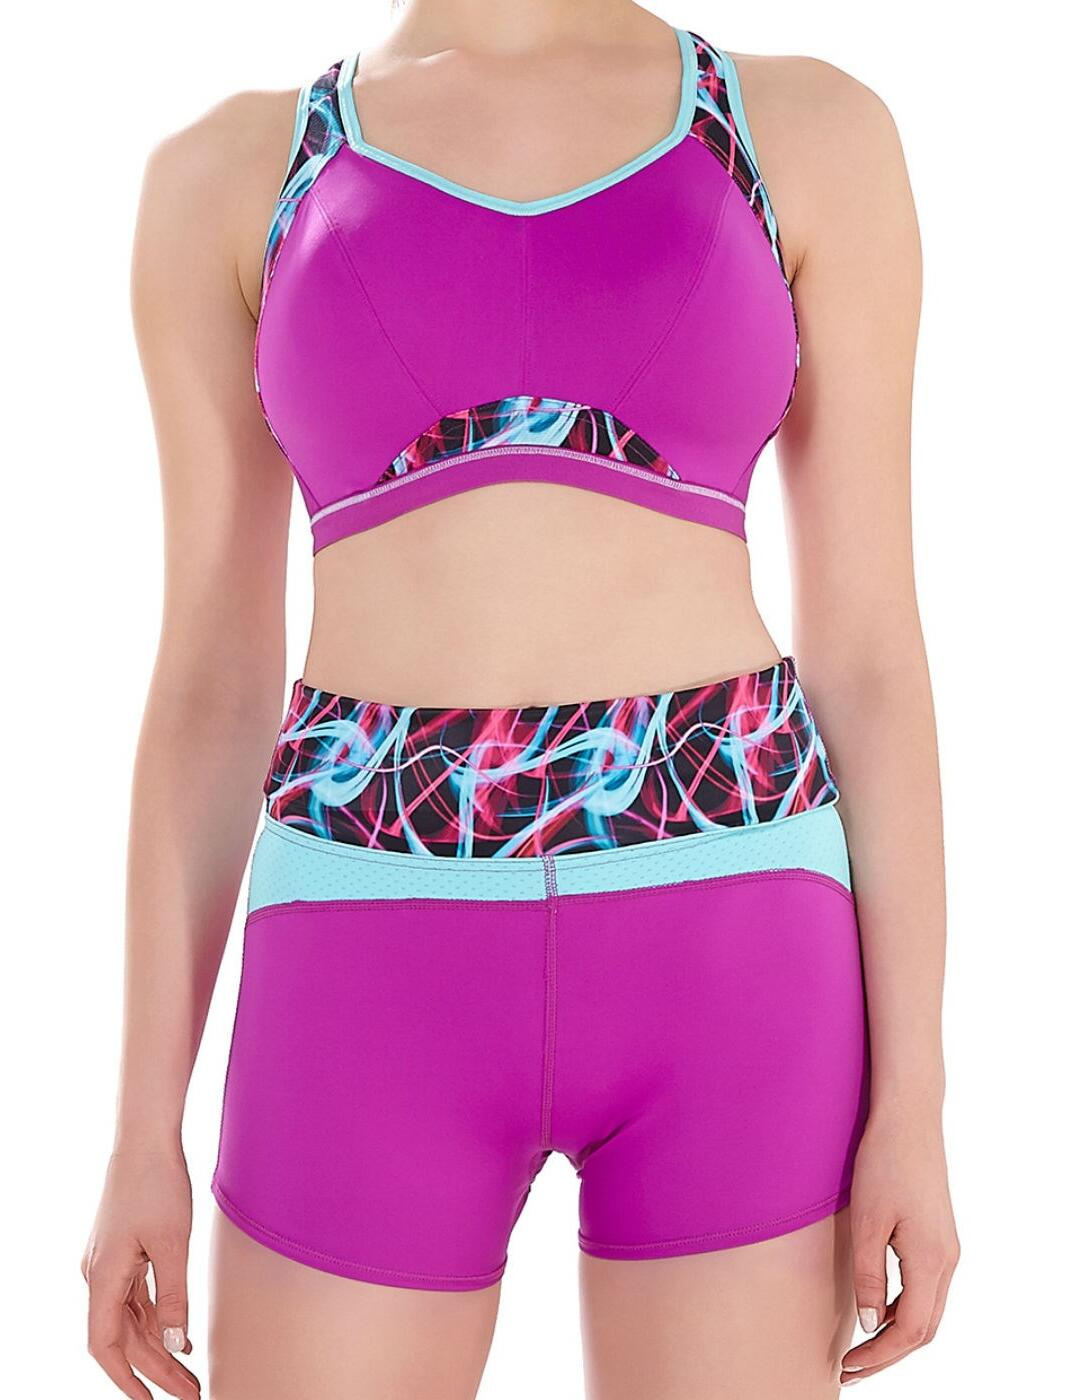 Freya-Active-Epic-Sports-Bra-4004-Underwired-Padded-Moulded-High-Impact-Gym-Bra thumbnail 21